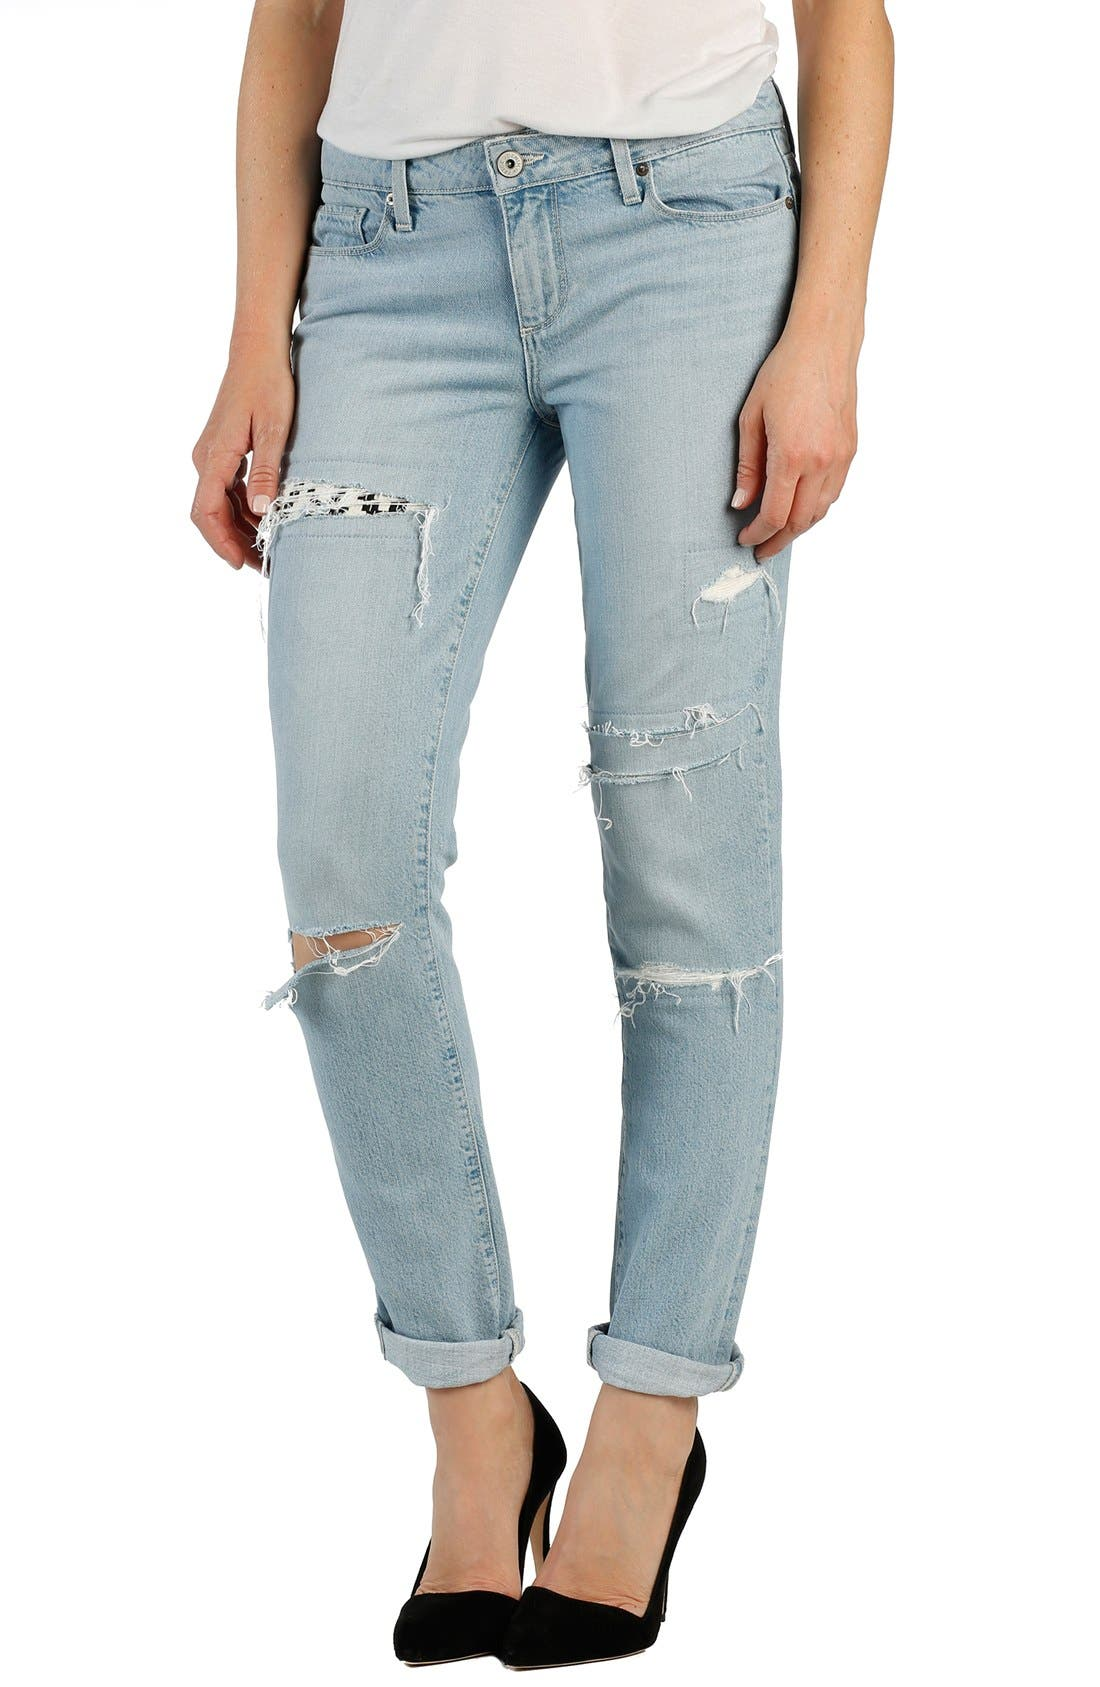 Alternate Image 1 Selected - Paige Denim 'Jimmy Jimmy' Ripped & Repaired Boyfriend Jeans (Mayan Patch)